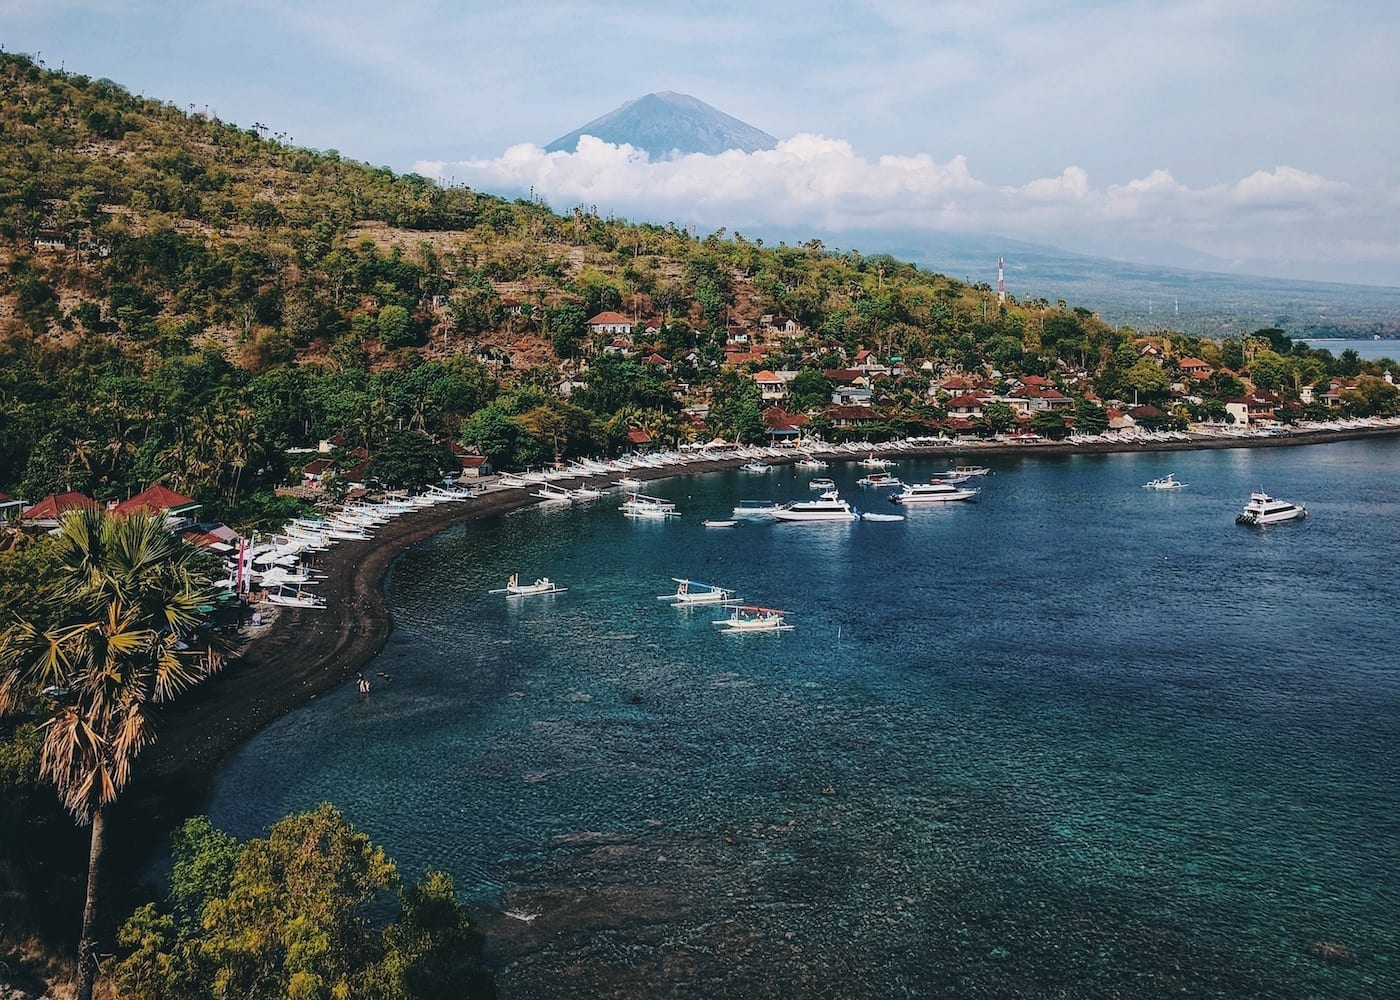 The Best Beaches in Bali: Where to swim, dive and live the island dream